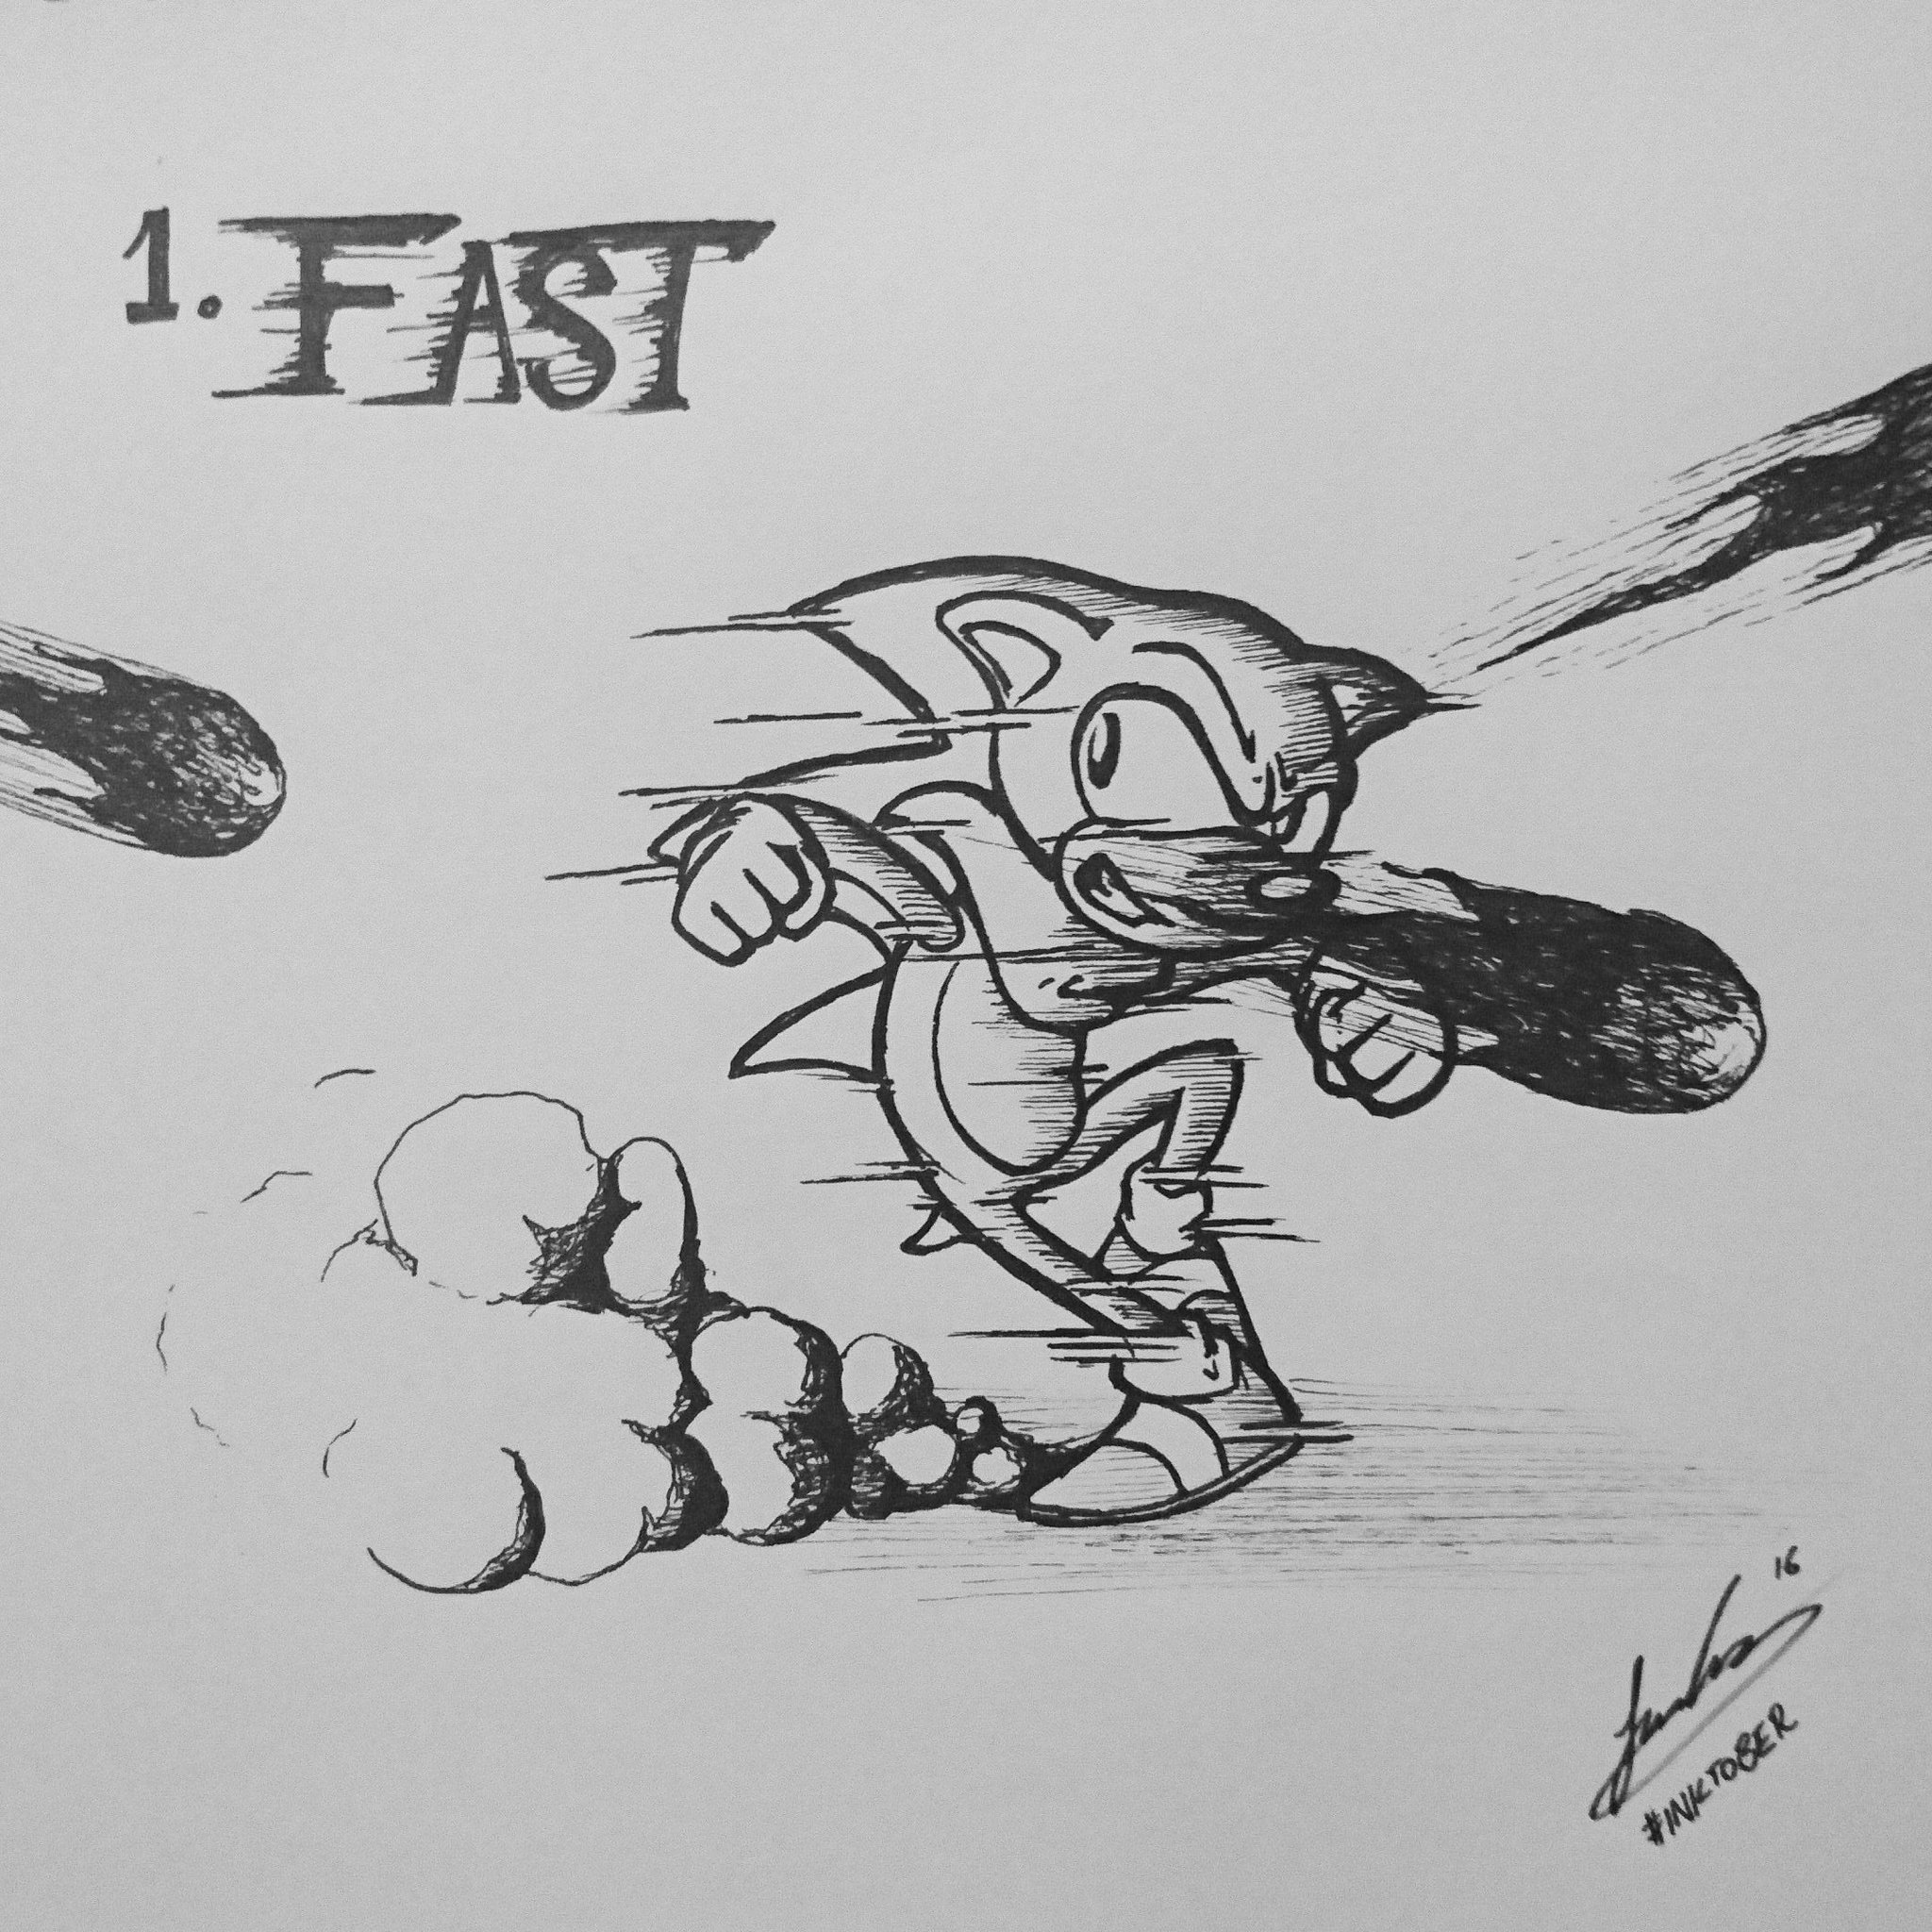 Day 1: Fast